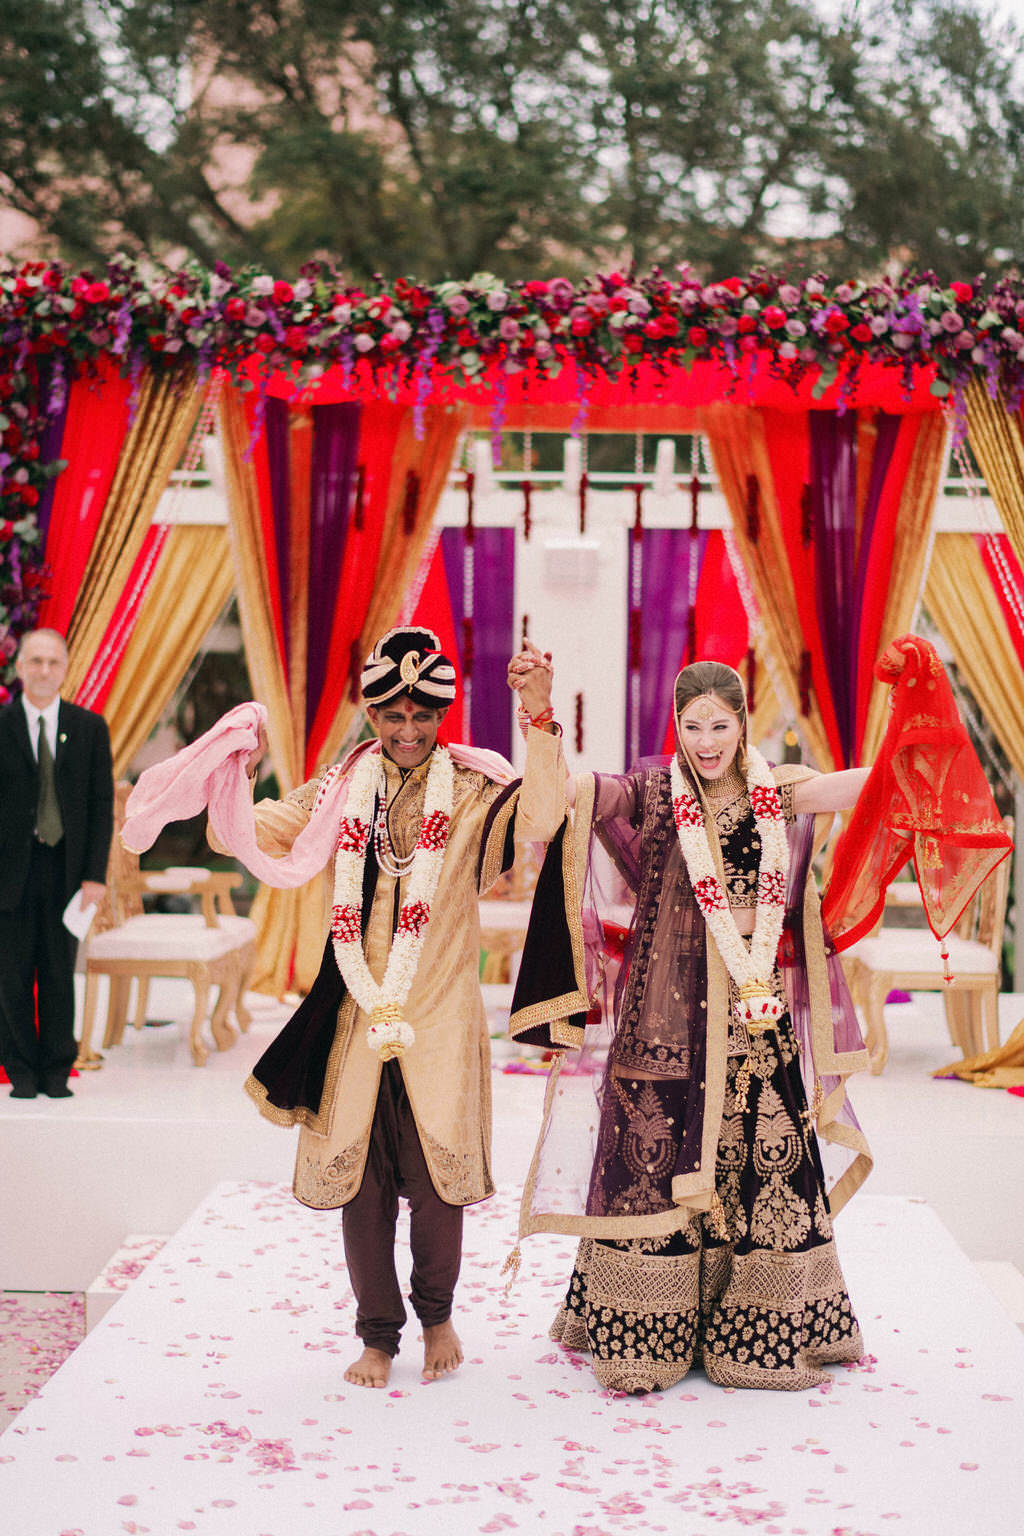 Tampa Bay Traditional Colorful Elegant Indian, Hindu Wedding Ceremony Bride and Groom Recessional Portrait, Bride in Custom Purple Velvet, Gold and Black Lehenga, Groom in Black and Gold Sherwani and Turban, Luxurious Red, Purple and Gold Linen Draping Altar, Lush Purple, Lilac, Plum, and Red Floral Arrangements, Hanging Red Floral and Crystals